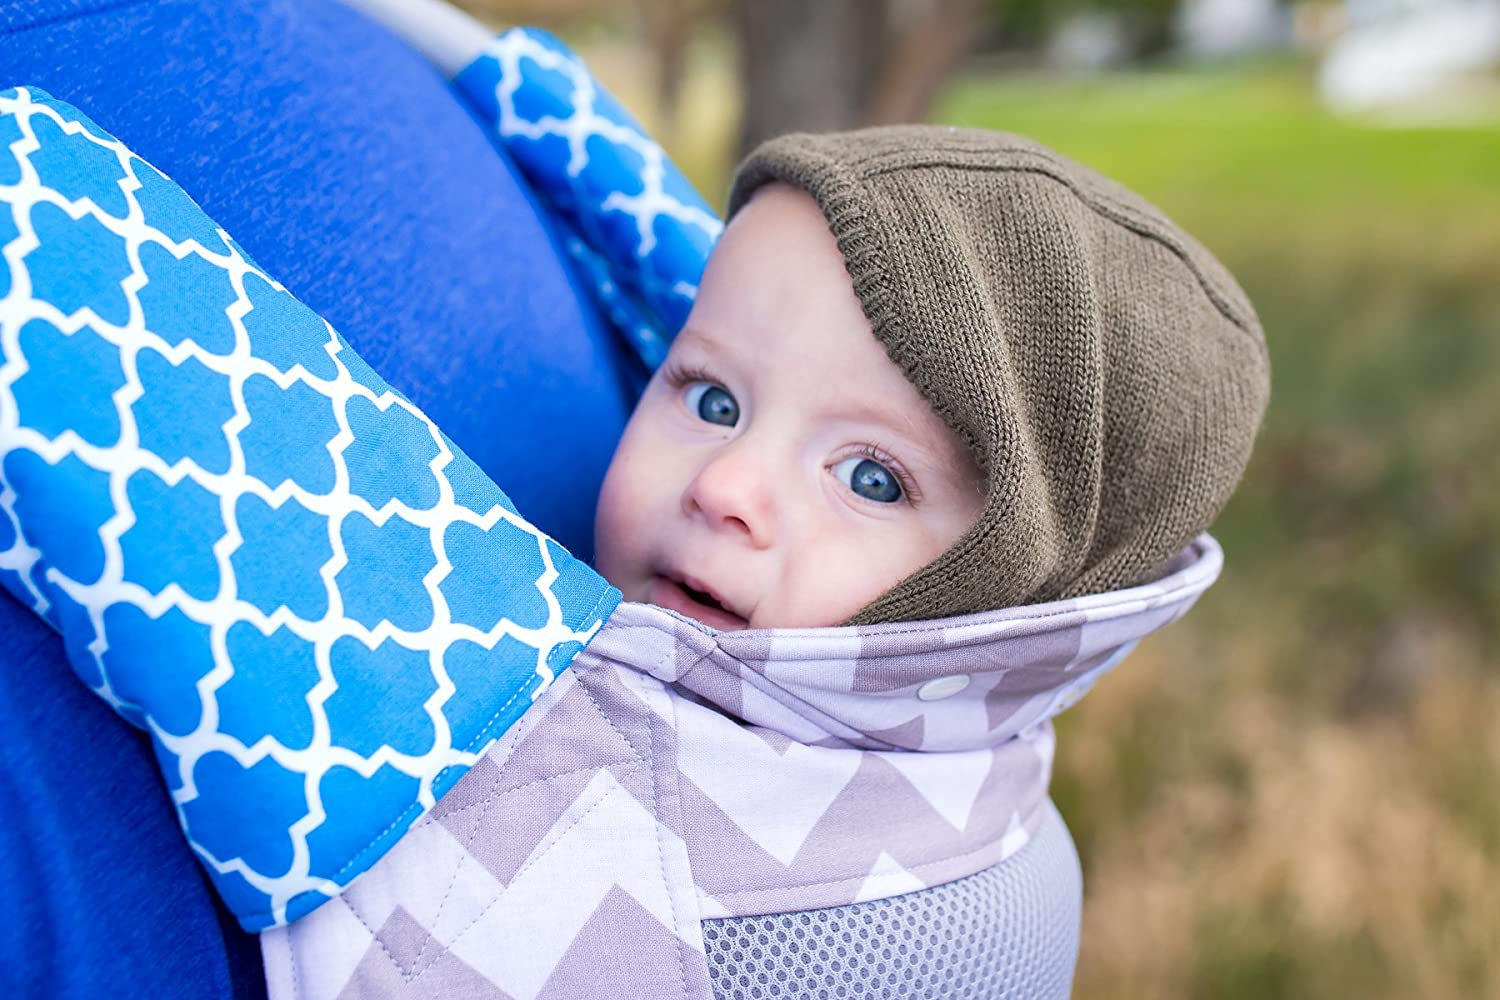 Jublii Soft-Structured Baby Carrier. Ergonomic, Front and Back Carry. ASTM certified. Made in USA. Small, Mesh Panel